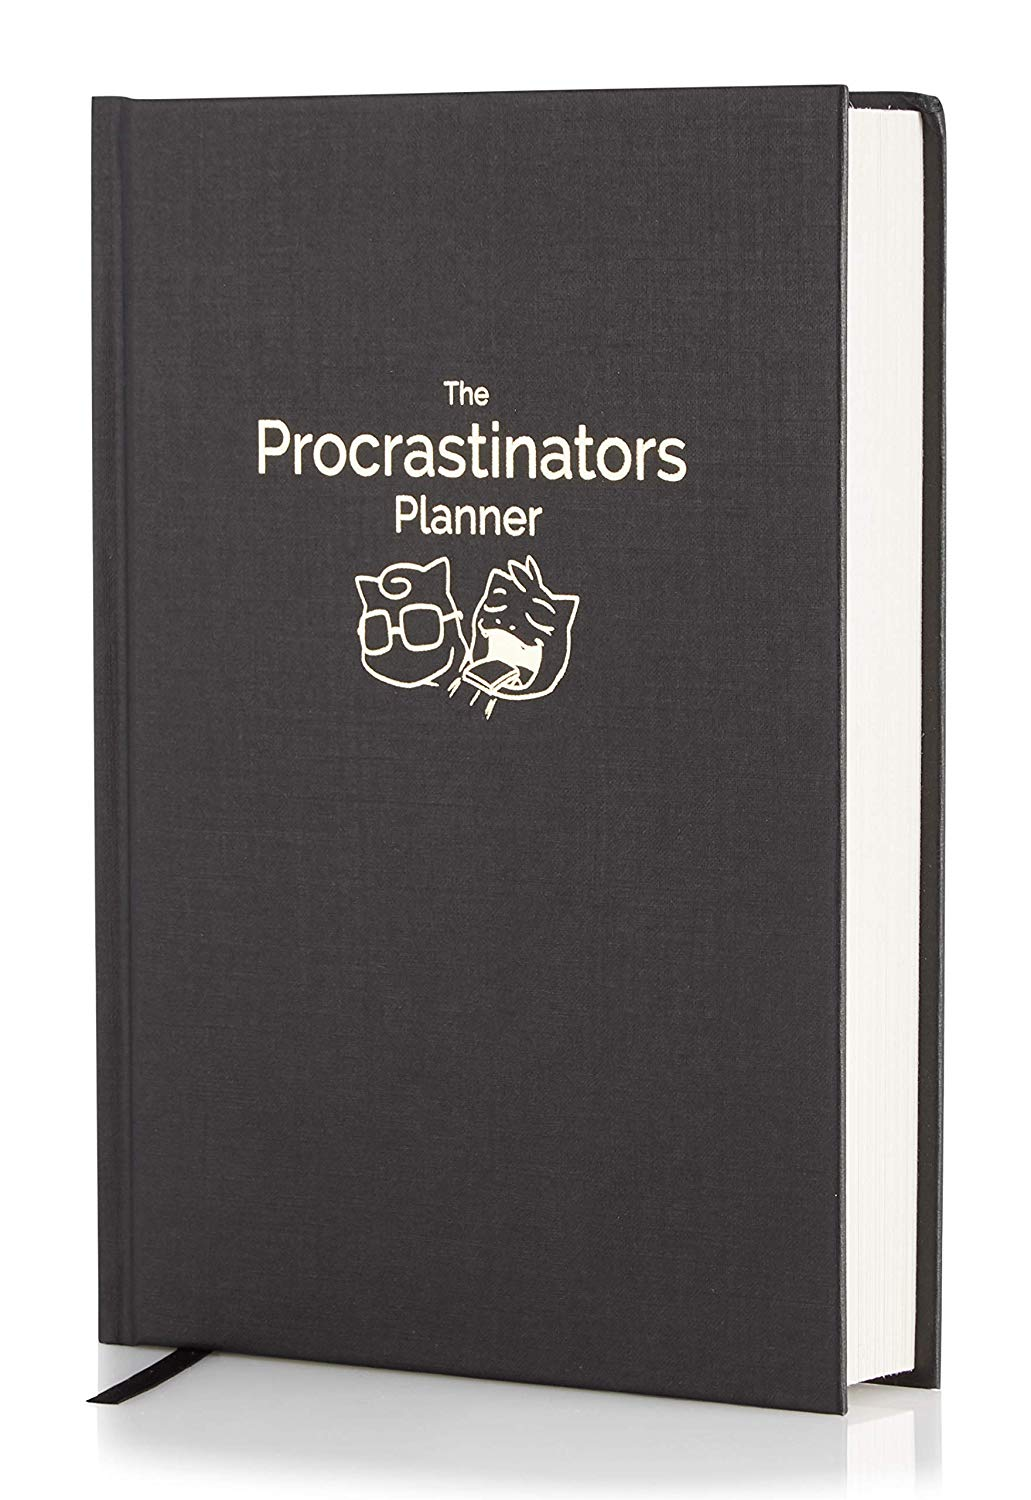 The Procrastinators Planner  Daily Weekly Organizer Designed to Increase Productivity and Combat Procrastination  Hardcover Half Year 182 Day Planner with Science and Philosopy of Procrastination